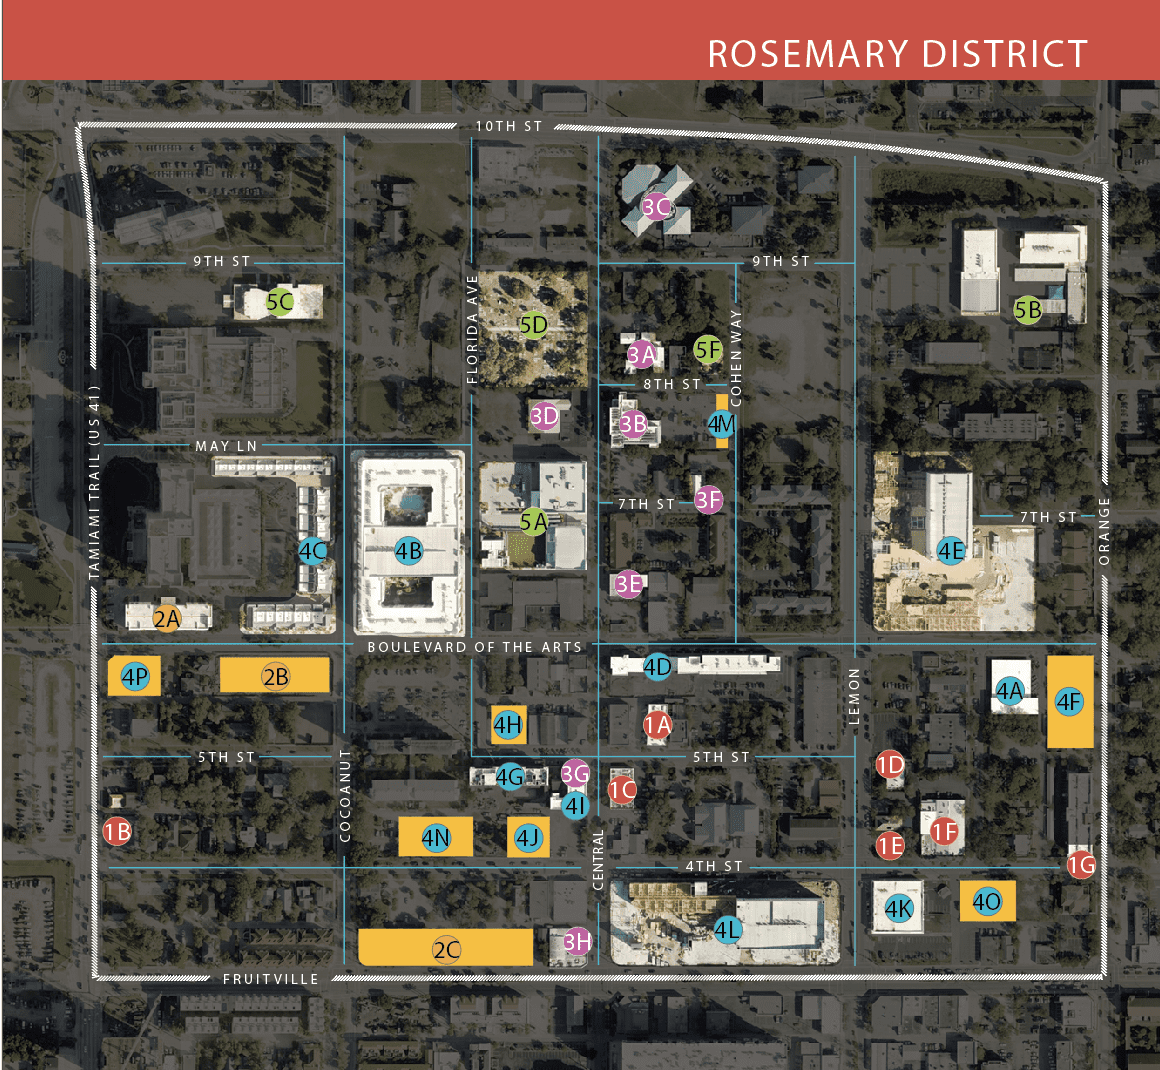 SSarasota's Rosemary District